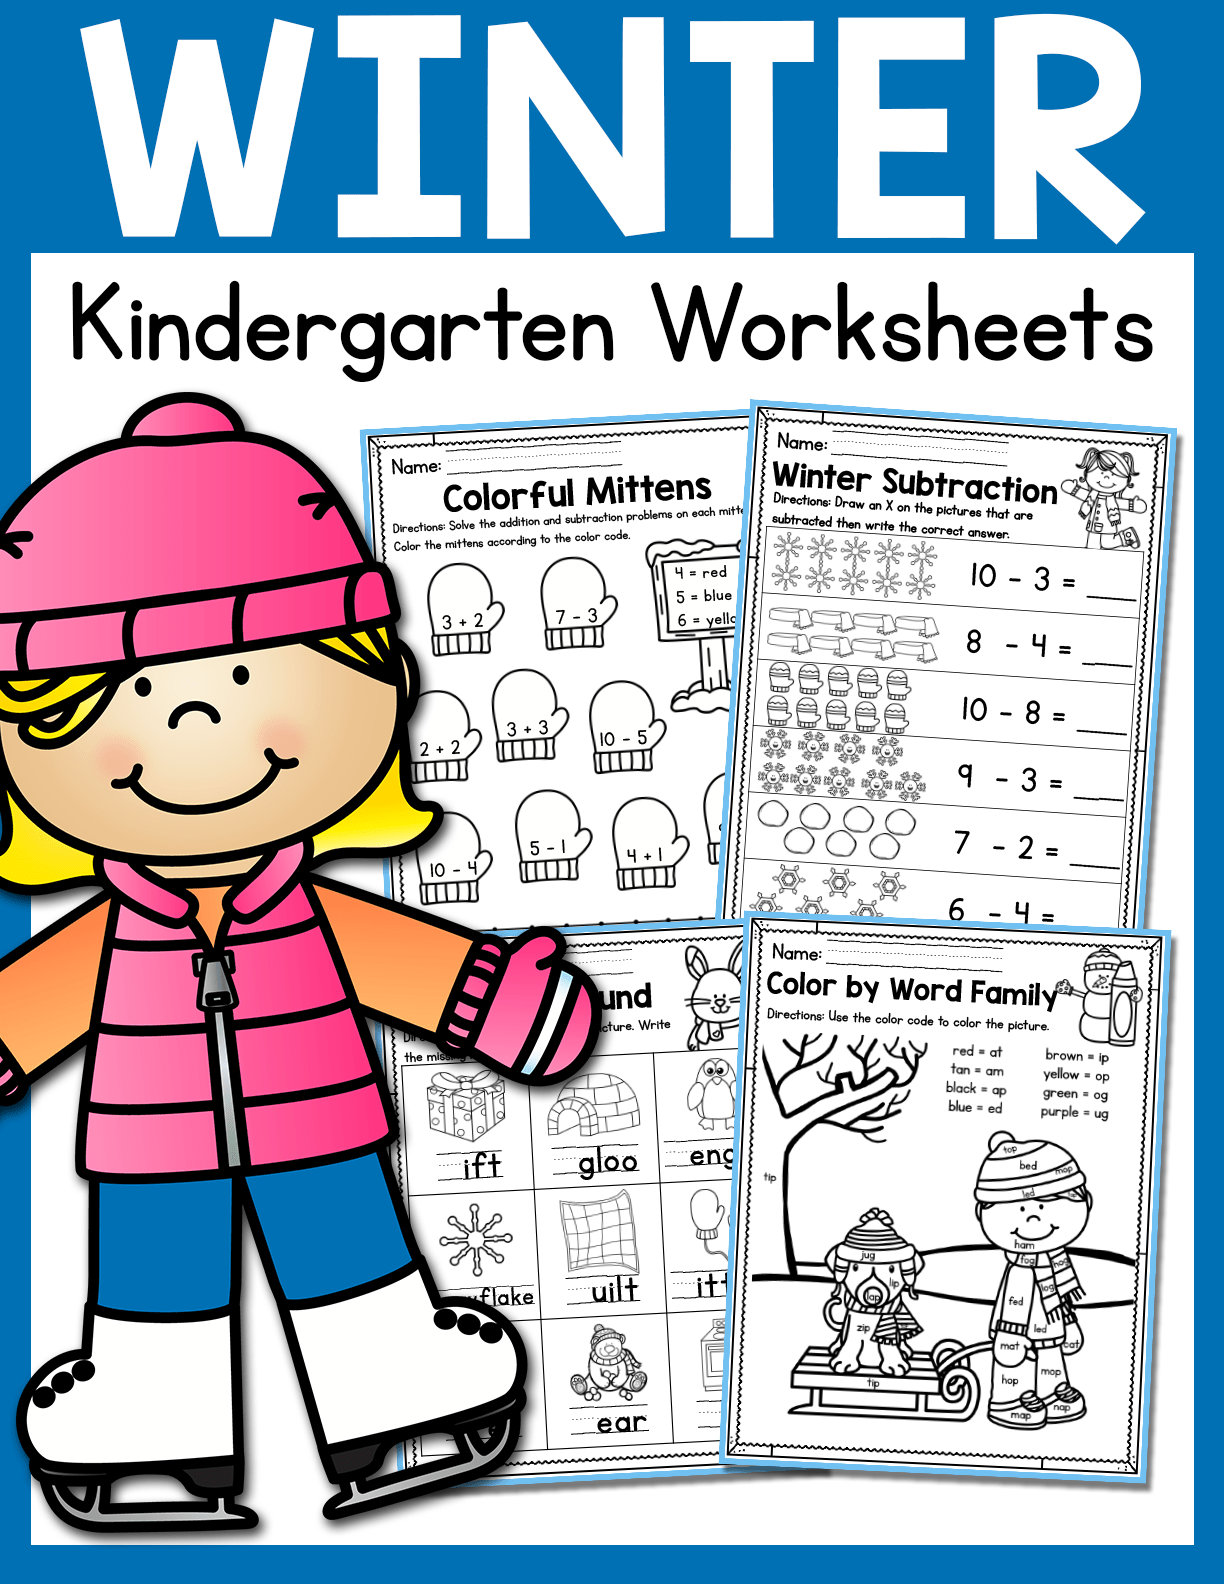 Winter Kindergarten Worksheets January